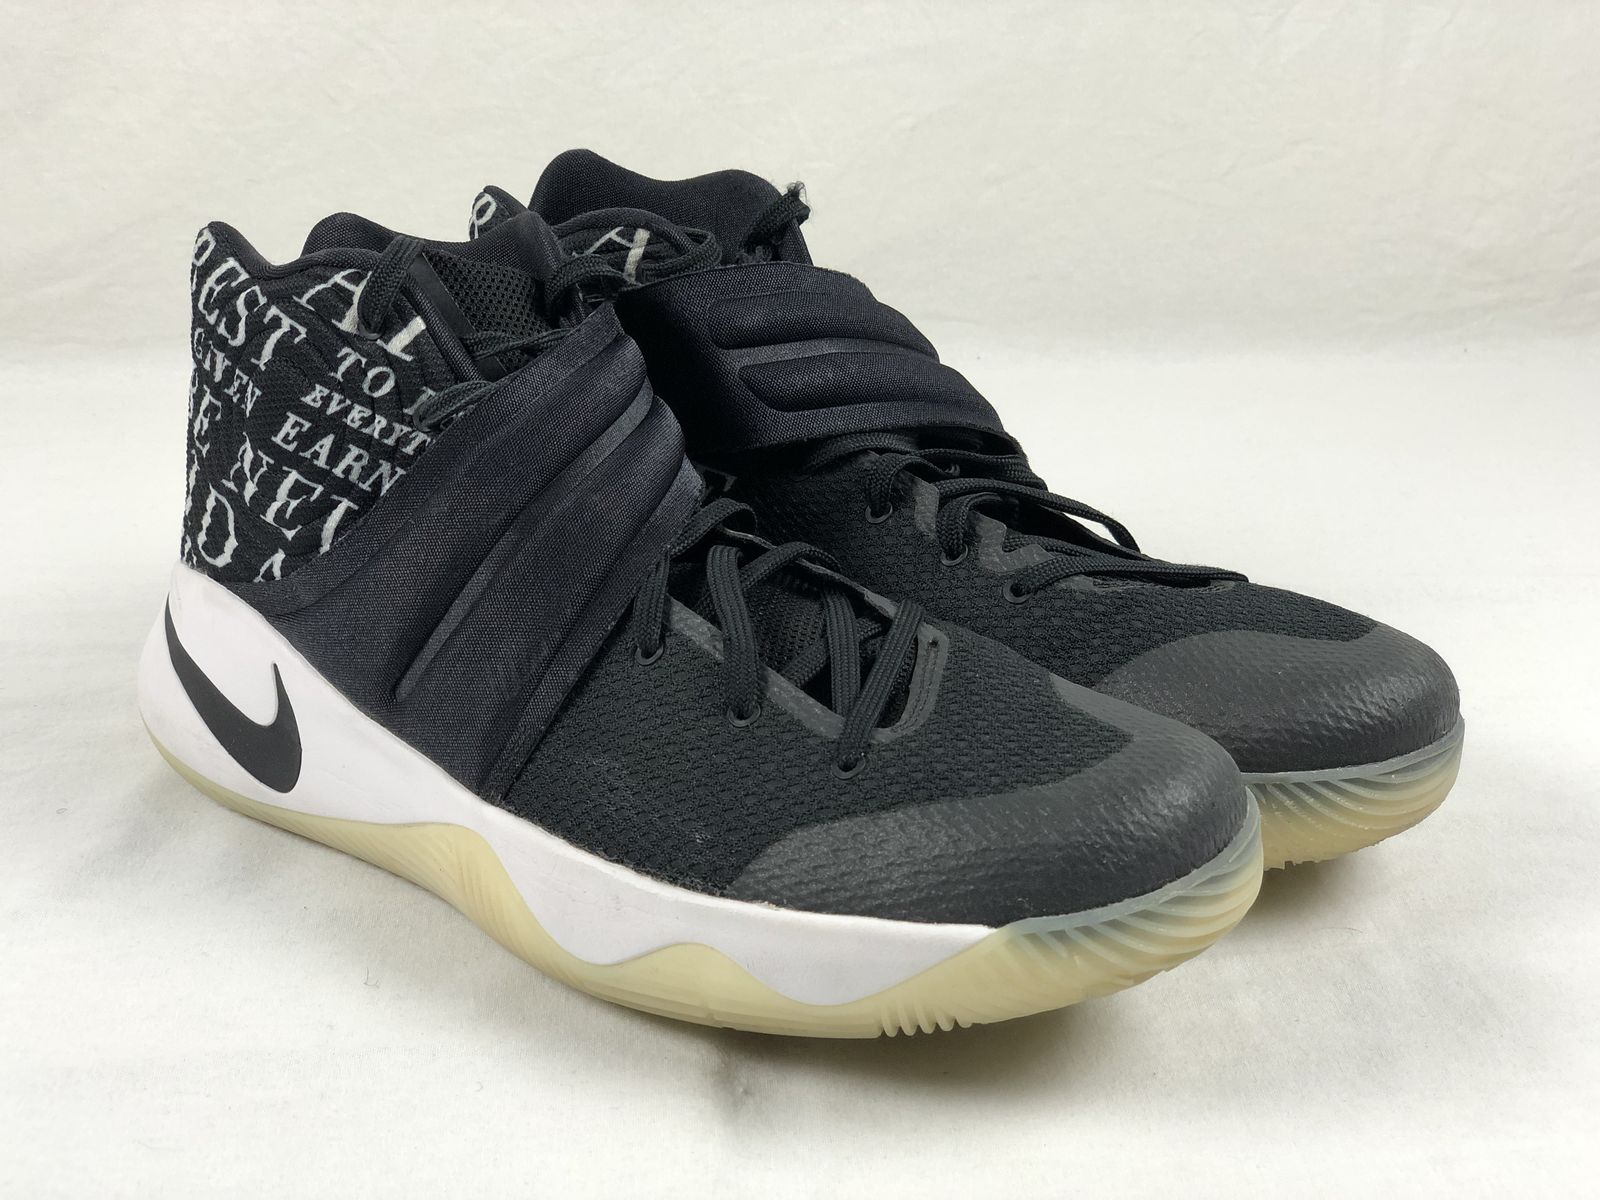 new style 8e338 64c5e Details about Nike Kyrie 2 ID - Black Basketball Shoes (Men s 15) - Used